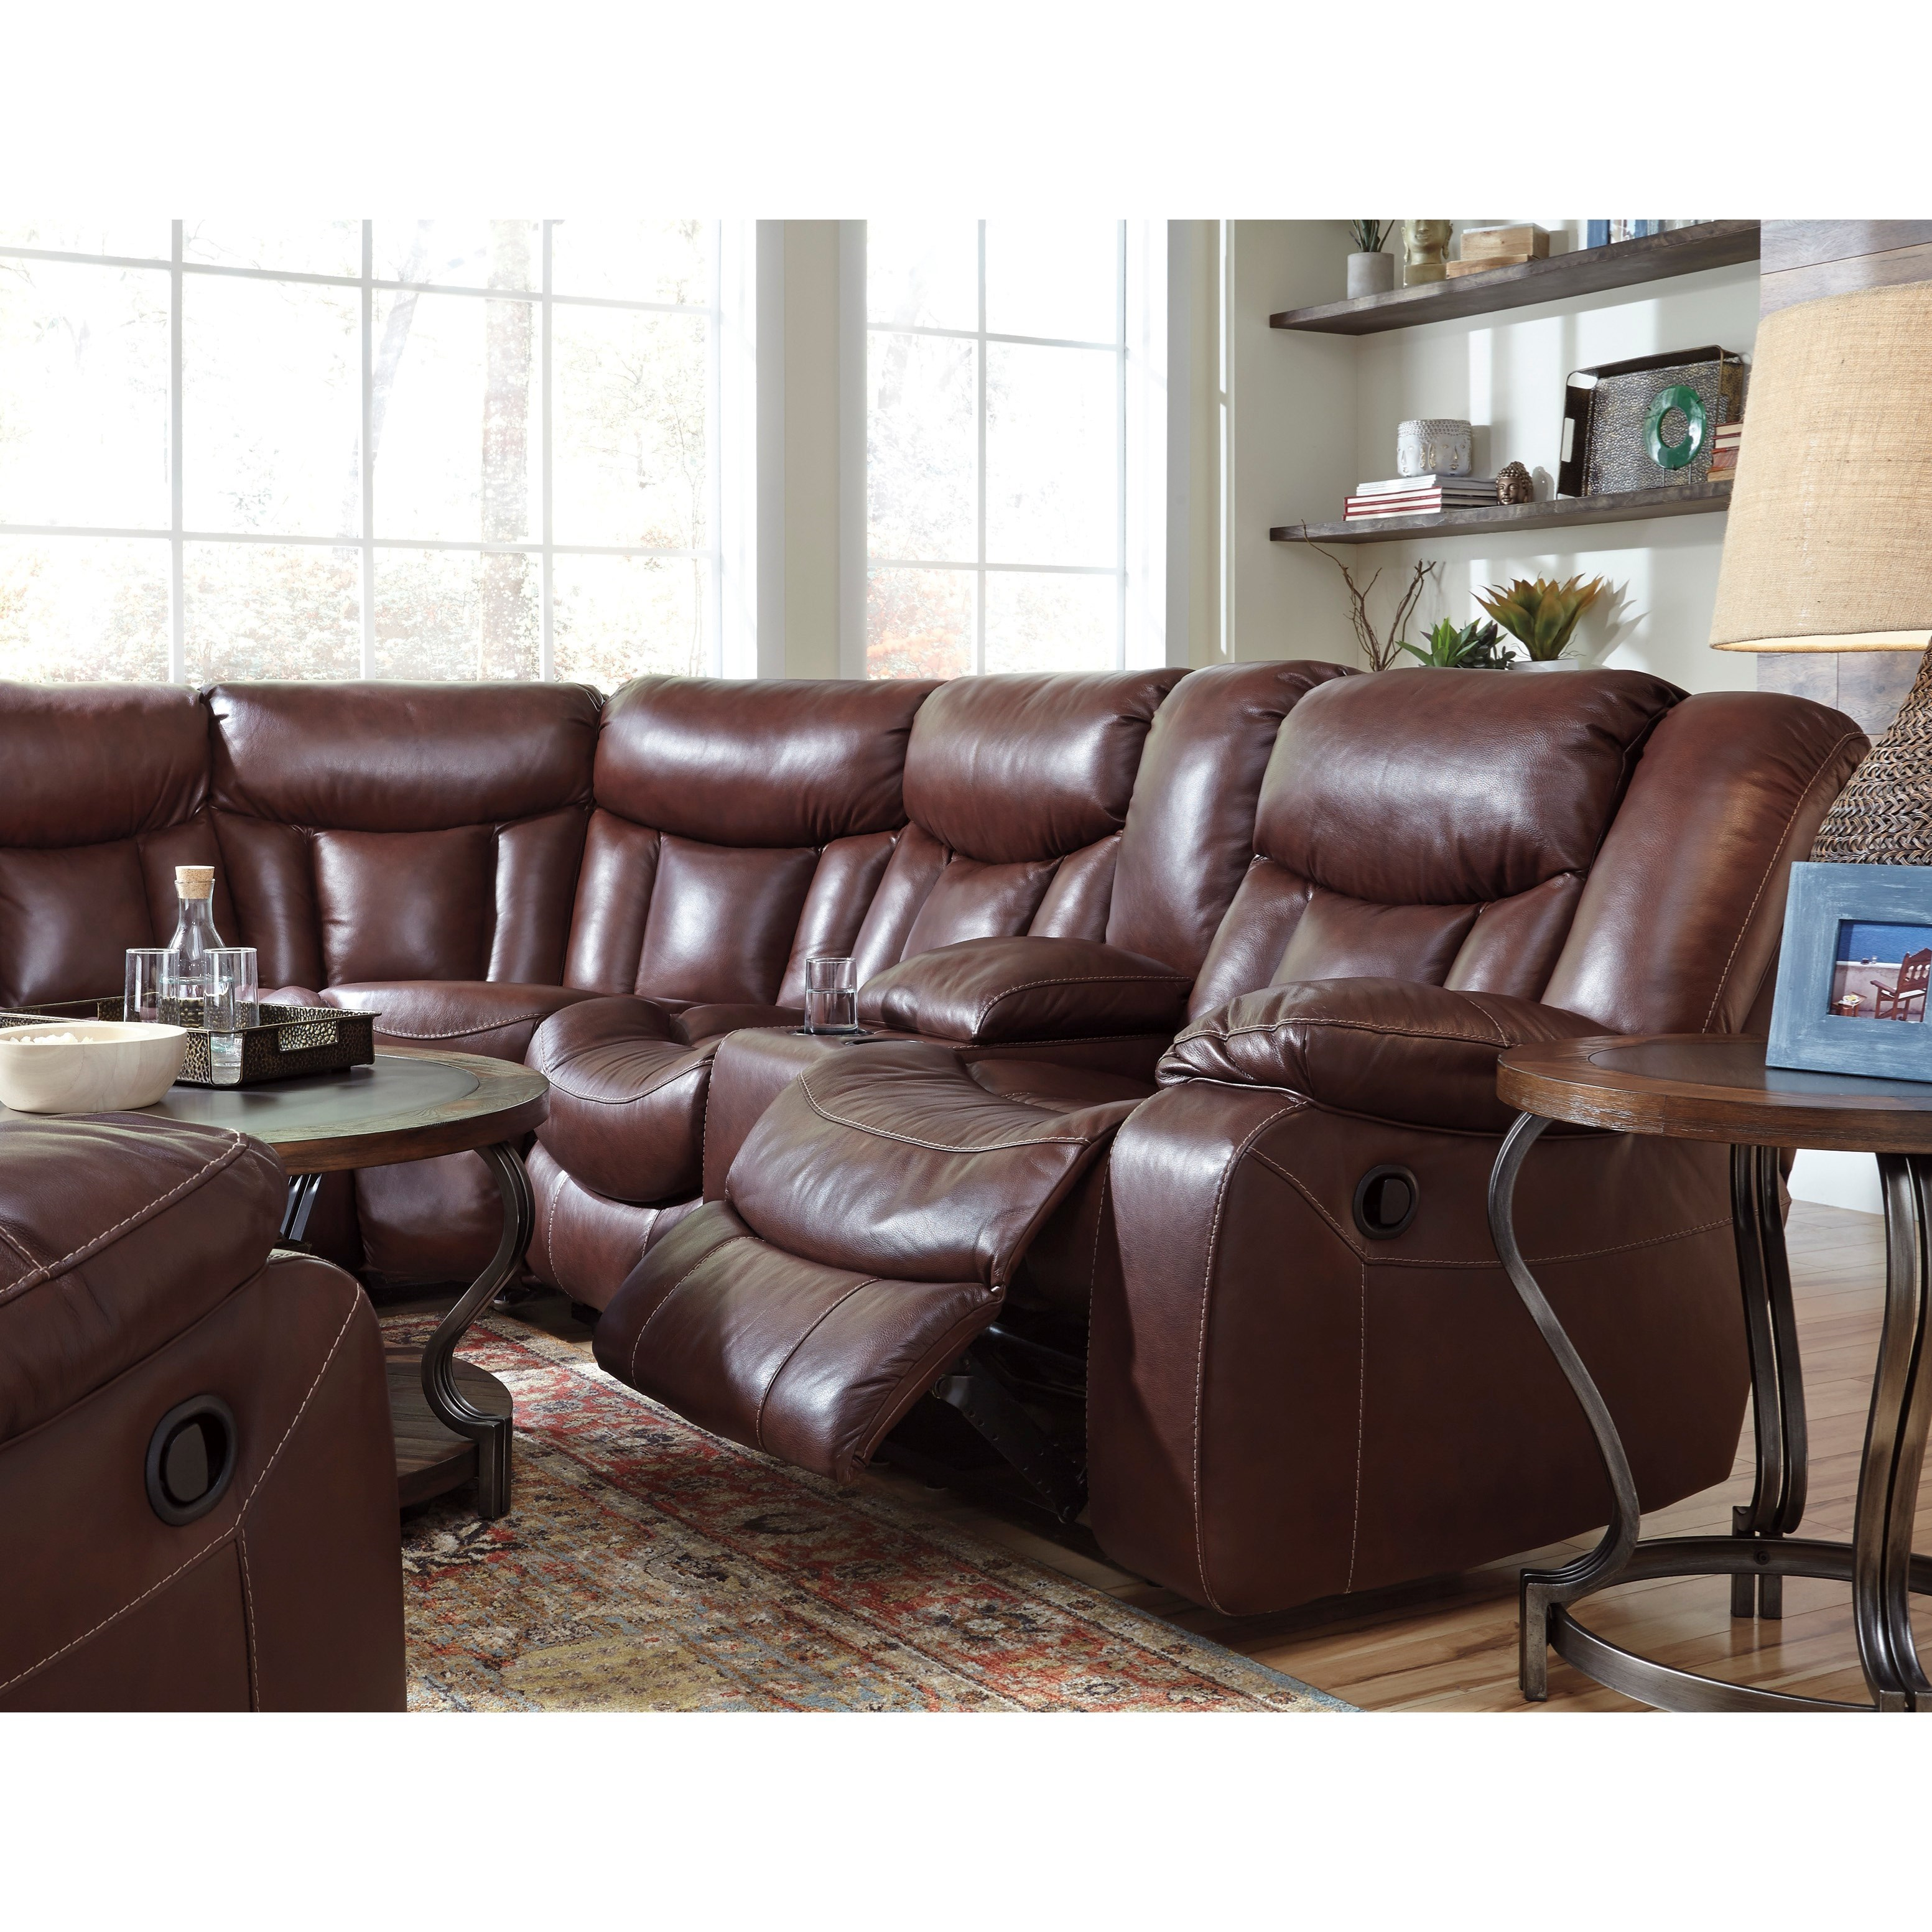 Benchcraft Amaroo Brown Leather Match 2 Piece Reclining